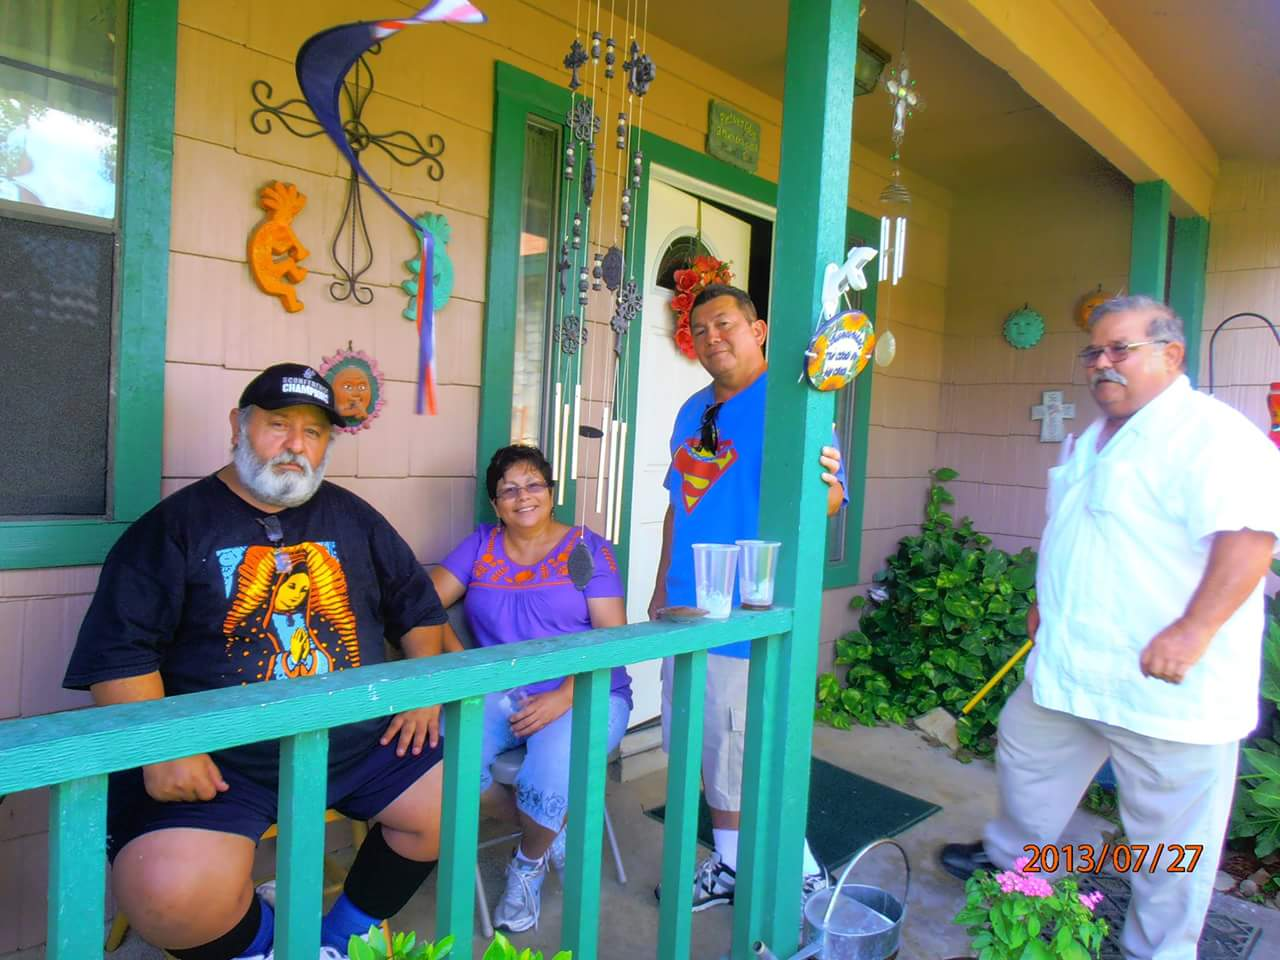 Jose and Siblings in Round Rock, Tx